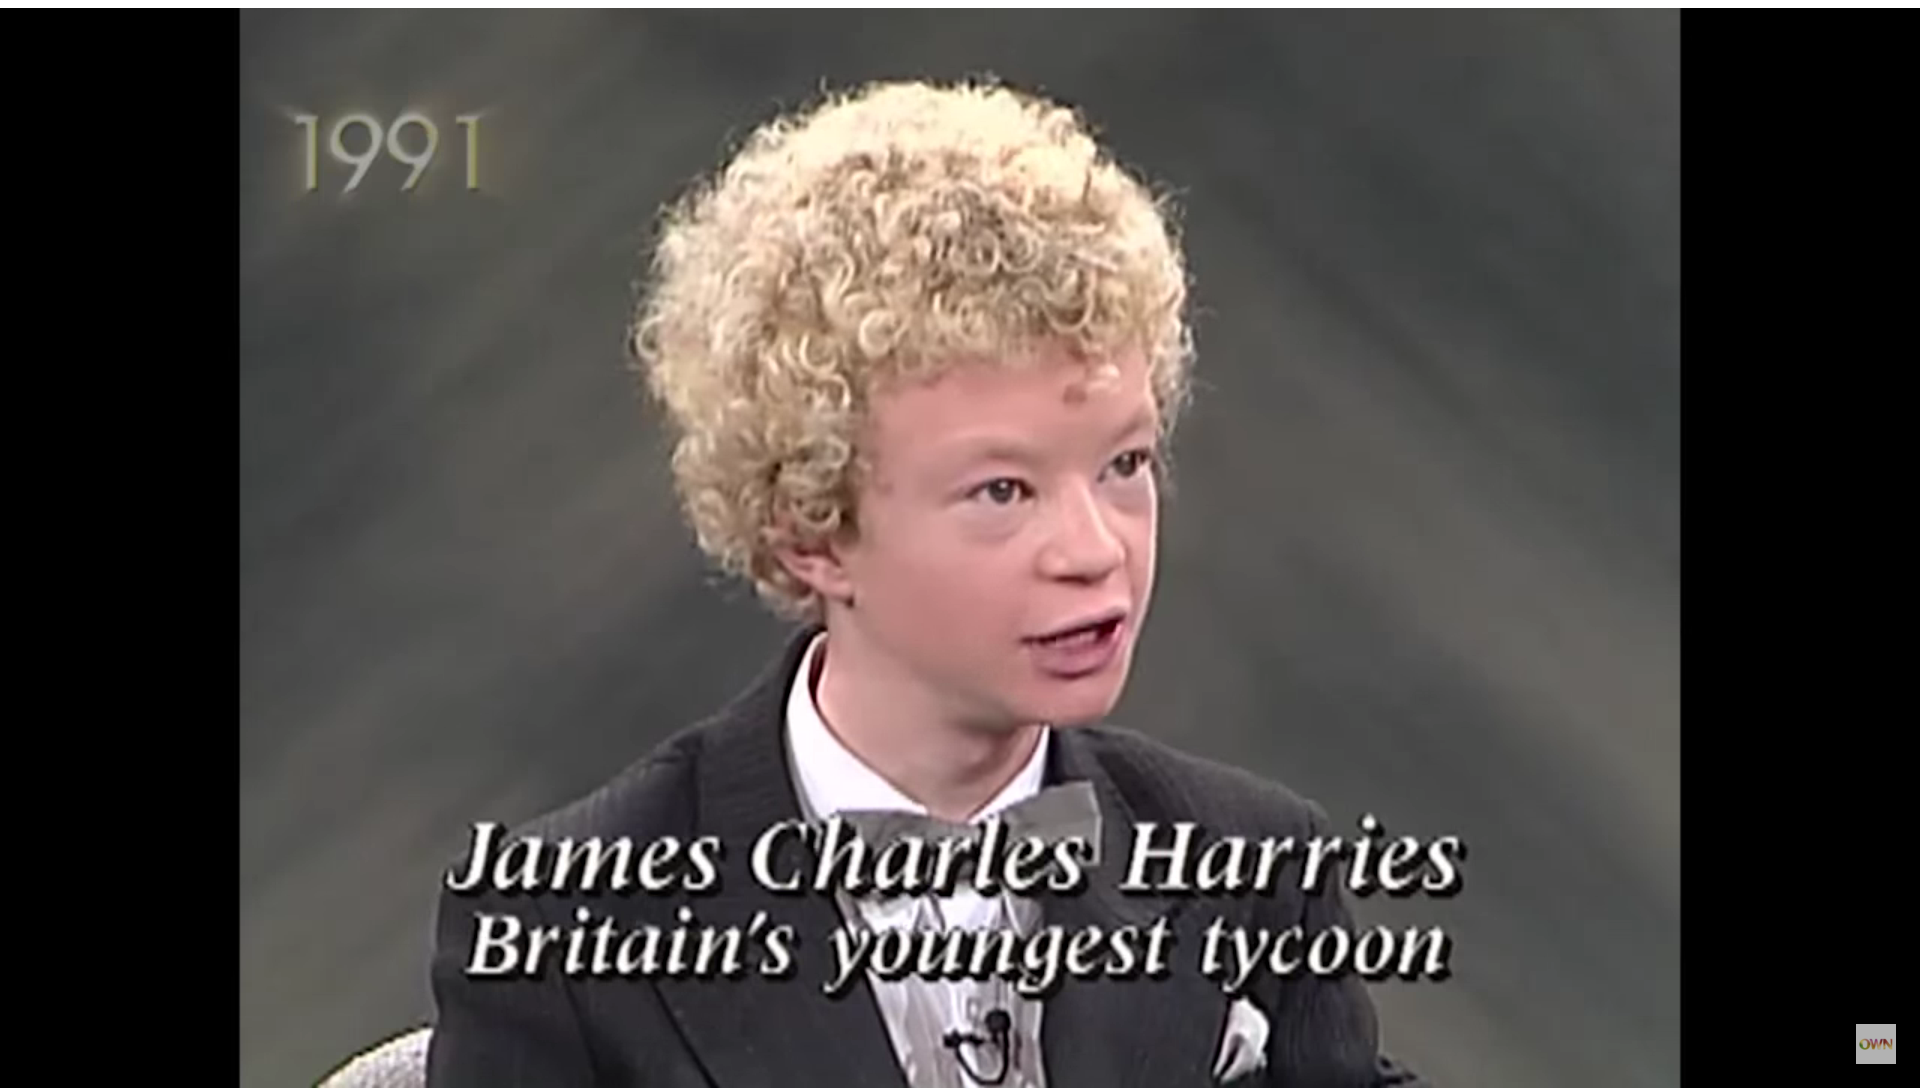 Oprah Interviewed a Child Prodigy in 1991... WHERE IS HE NOW IN 2015?